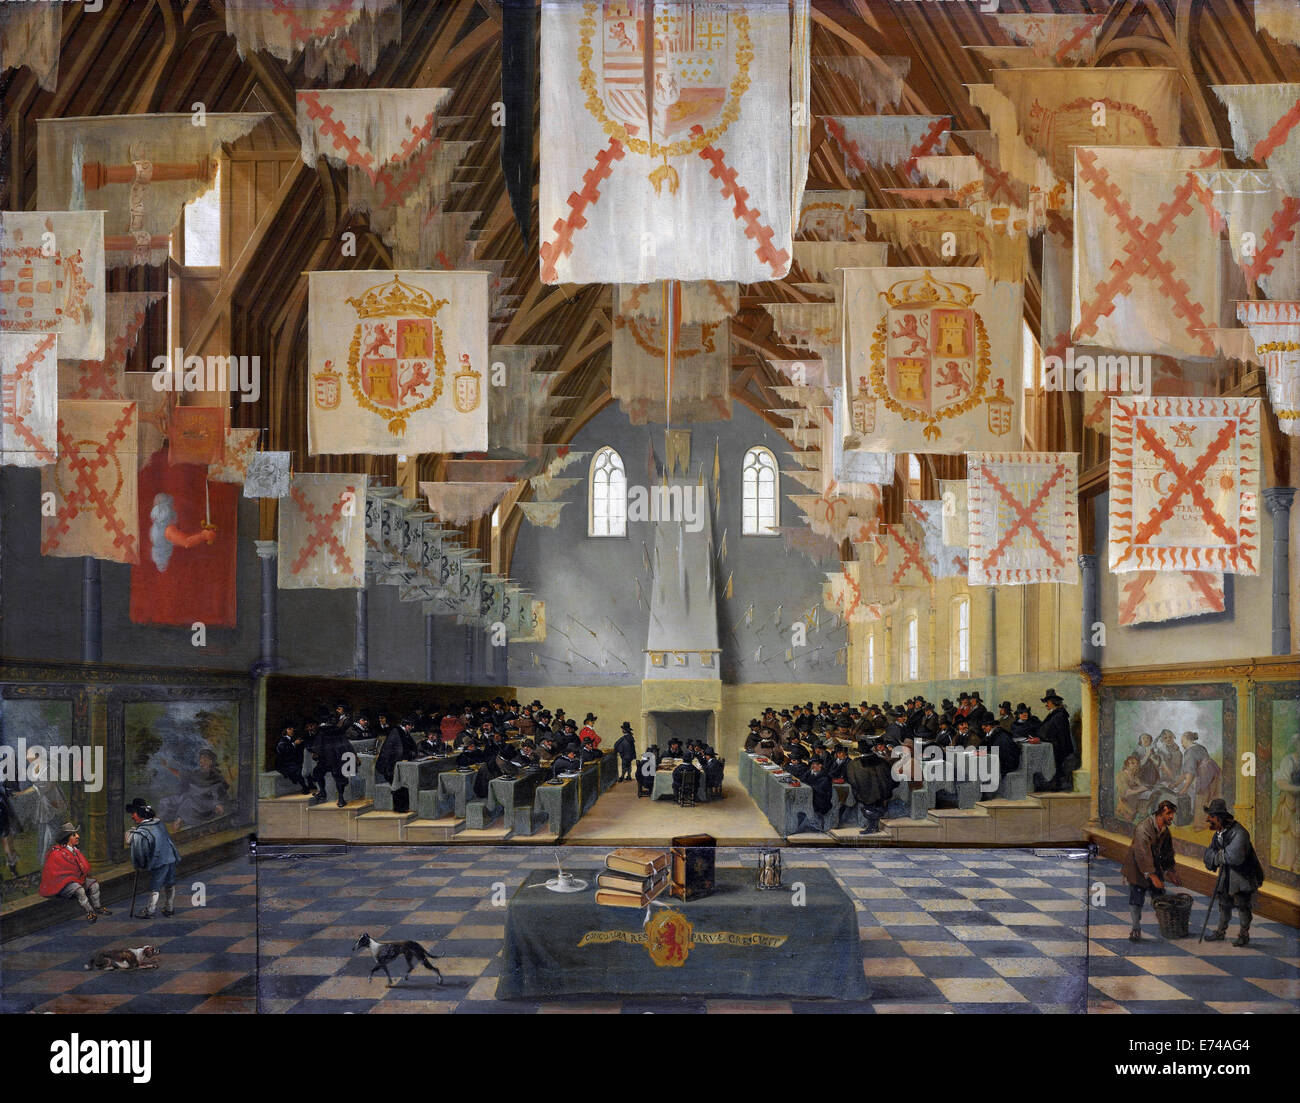 The Knight Hall of the Binnenhof during the Great Assembly of 1651, Bartholomeus van Bassen, Anthonie Palamedesz,1651 - Stock Image